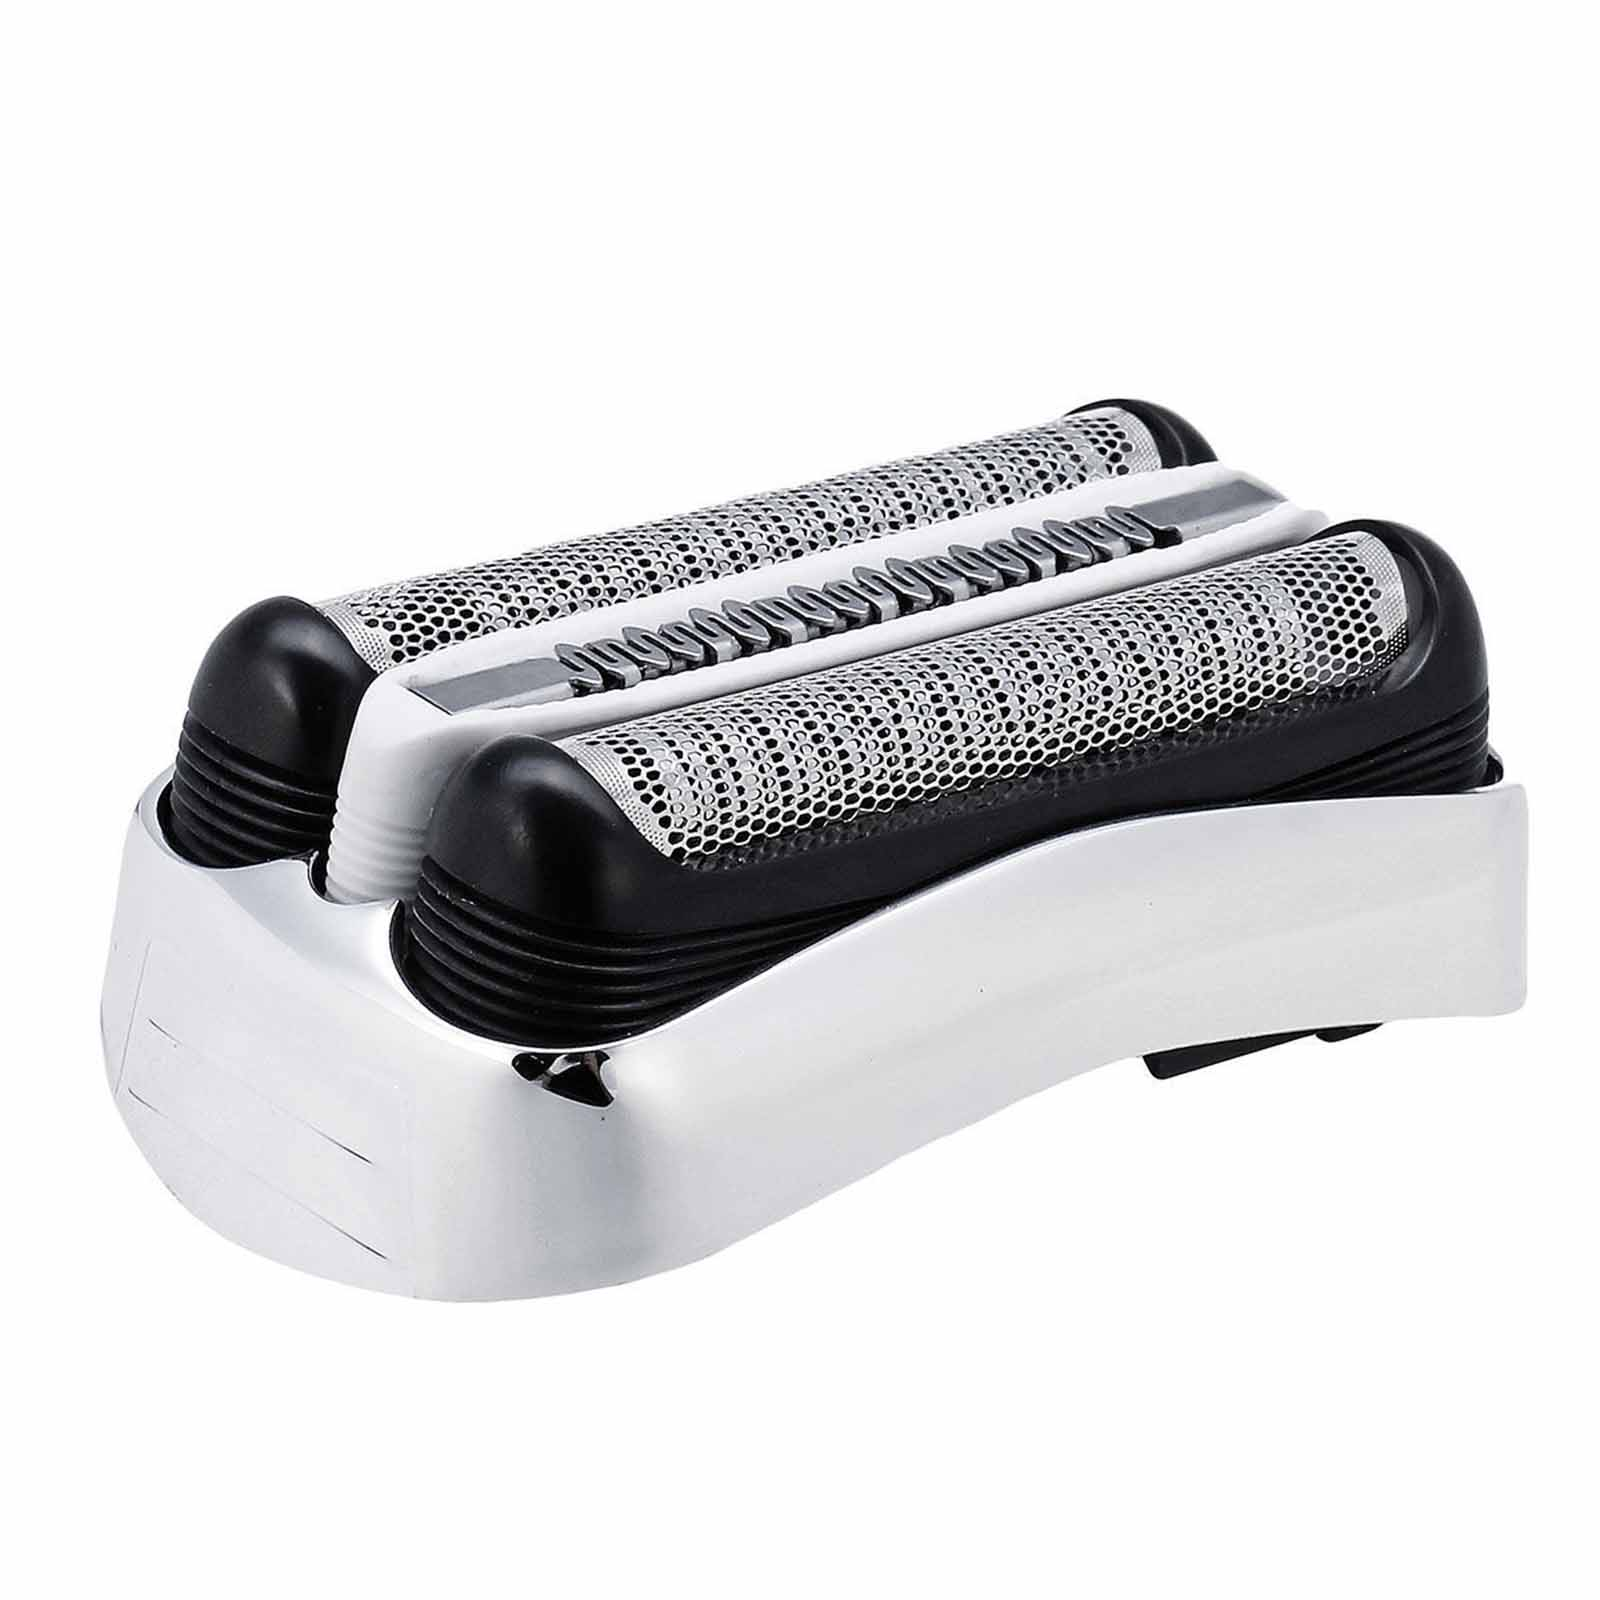 Image 2 - For Braun Electric Shaver Head Accessories Foil Cutter Head Cassette 32B 32S for Braun Electric Razor Shaver Series 3 320 330-in Personal Care Appliance Parts from Home Appliances